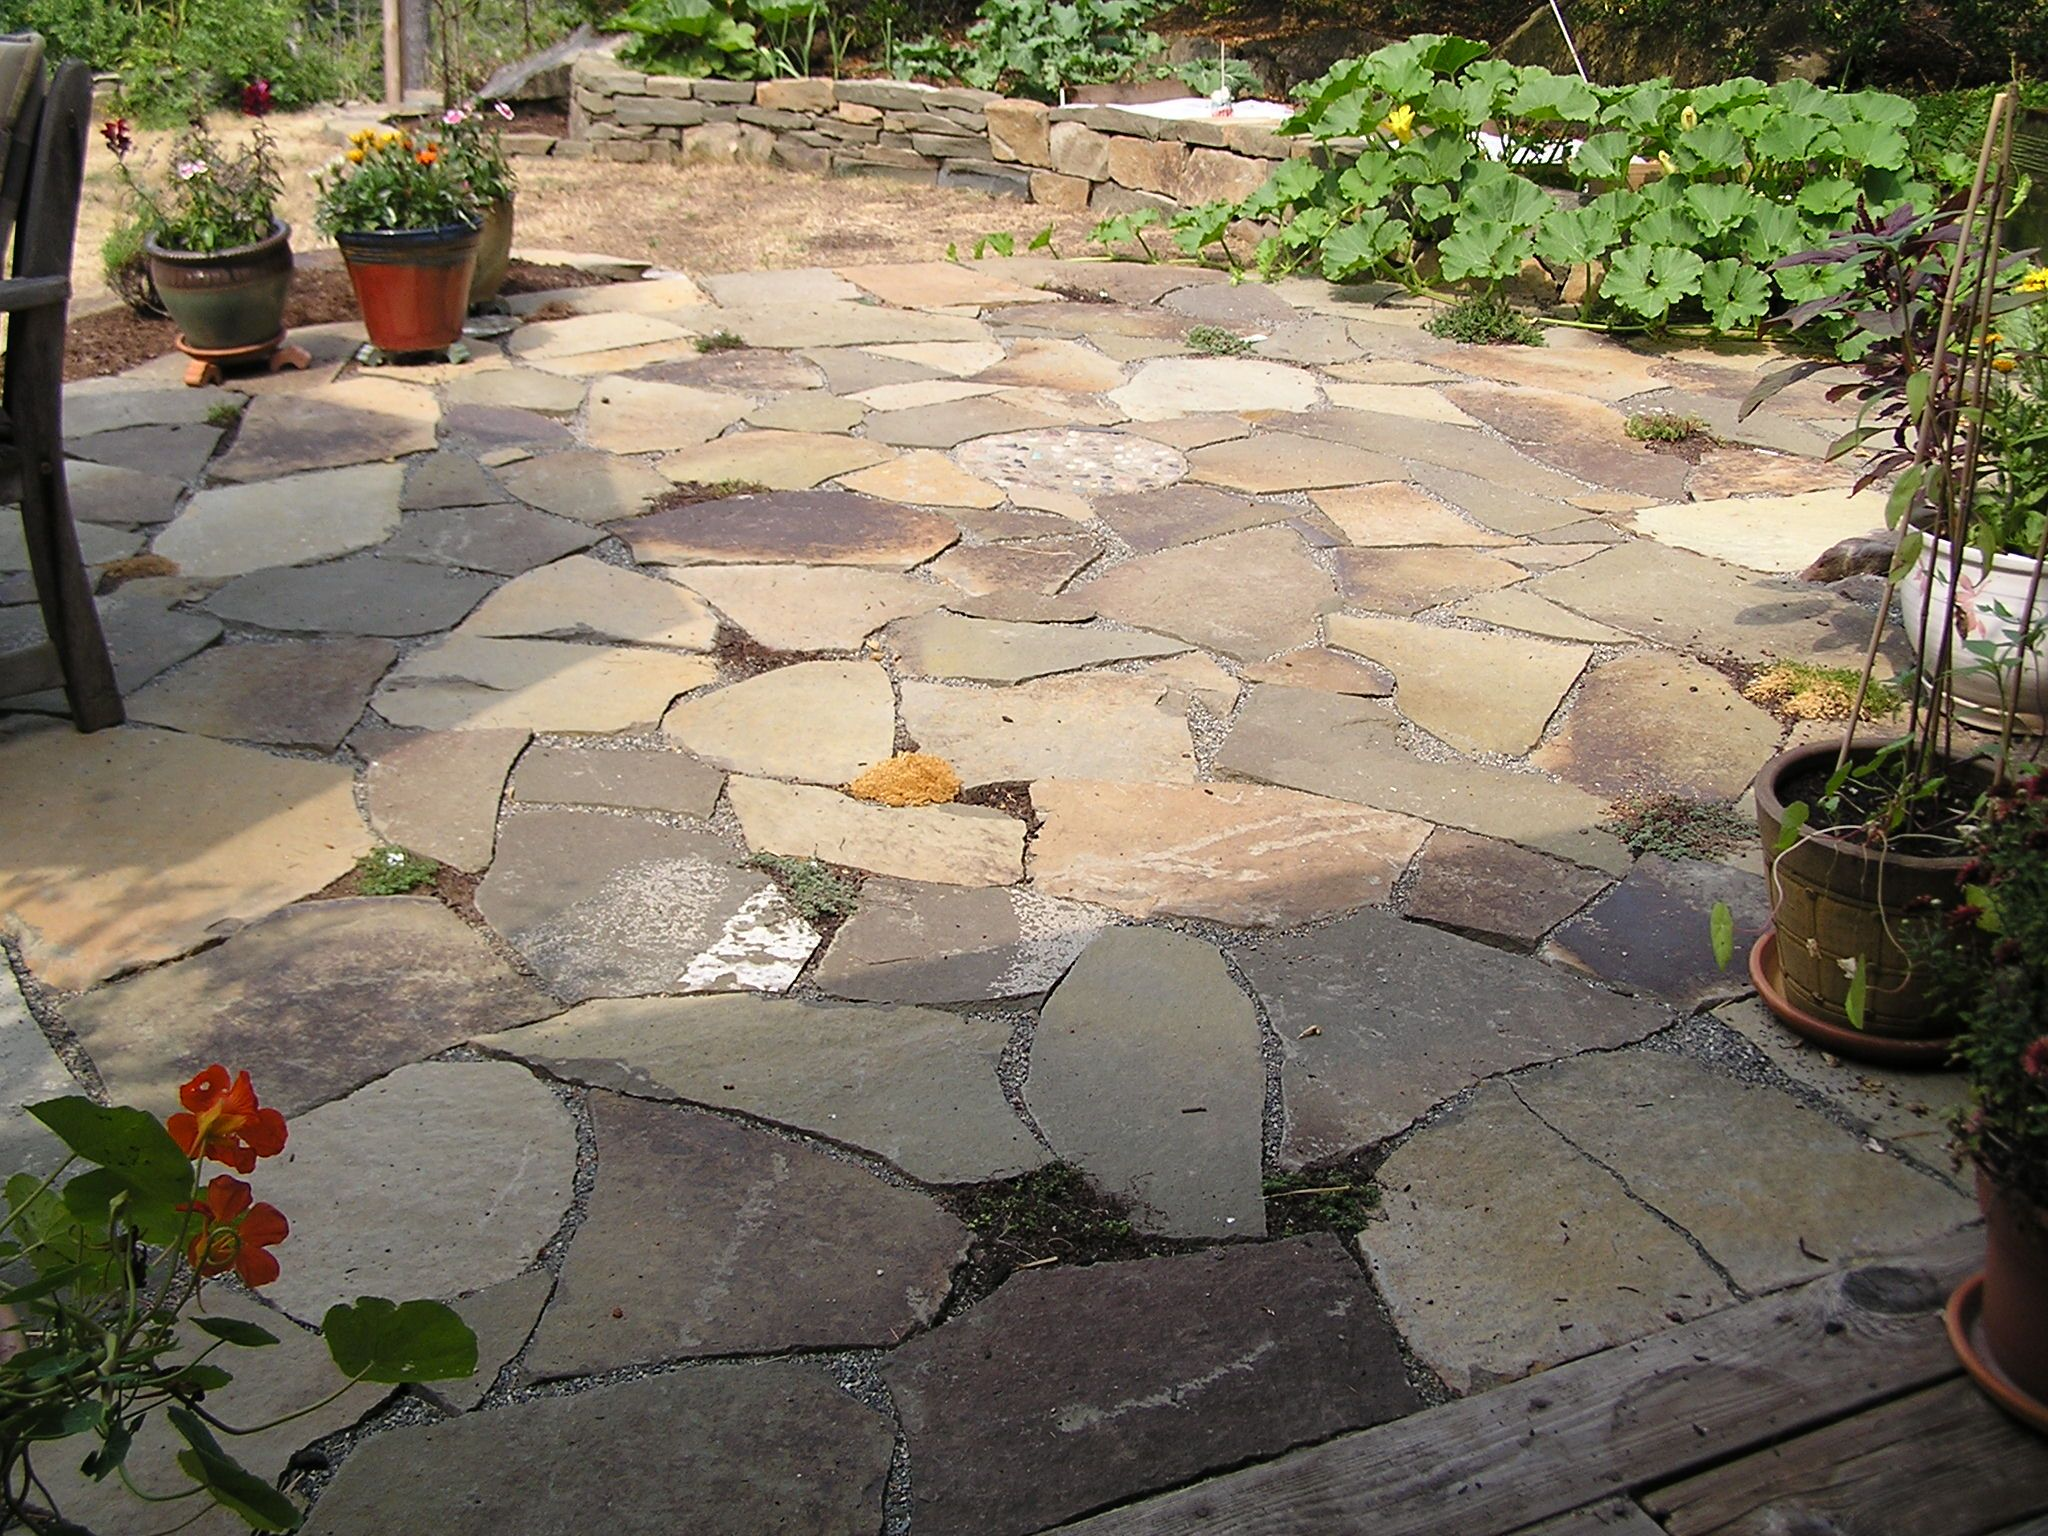 creative patiooutdoor bar ideas you must try at your backyard - Diy Sandstone Patio